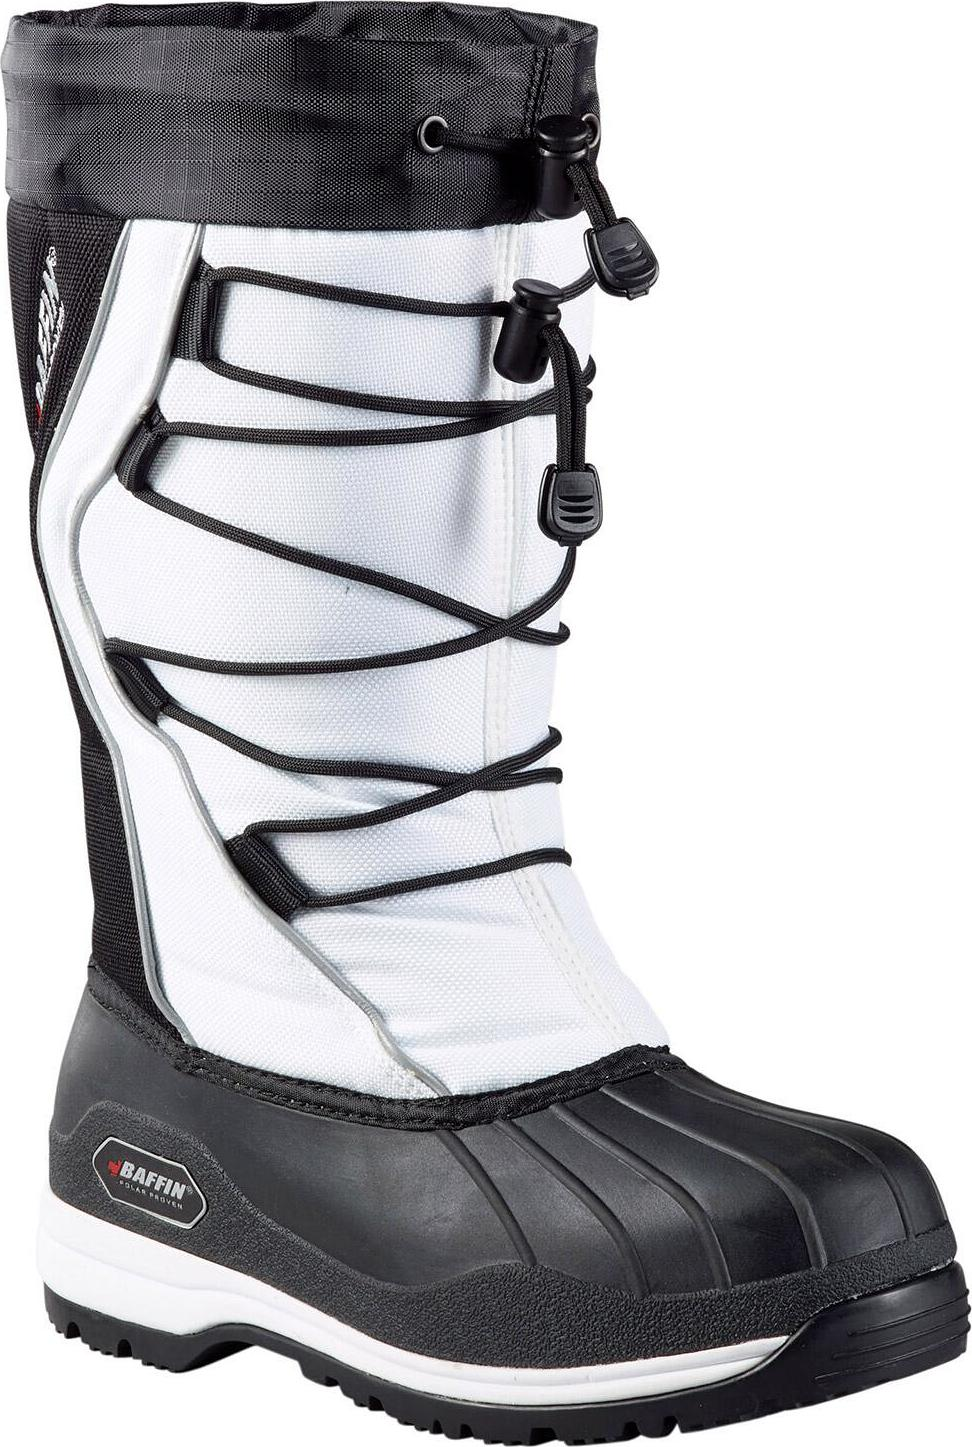 eda3fa584f1 Baffin Women's Icefield Boots -148F/-100C